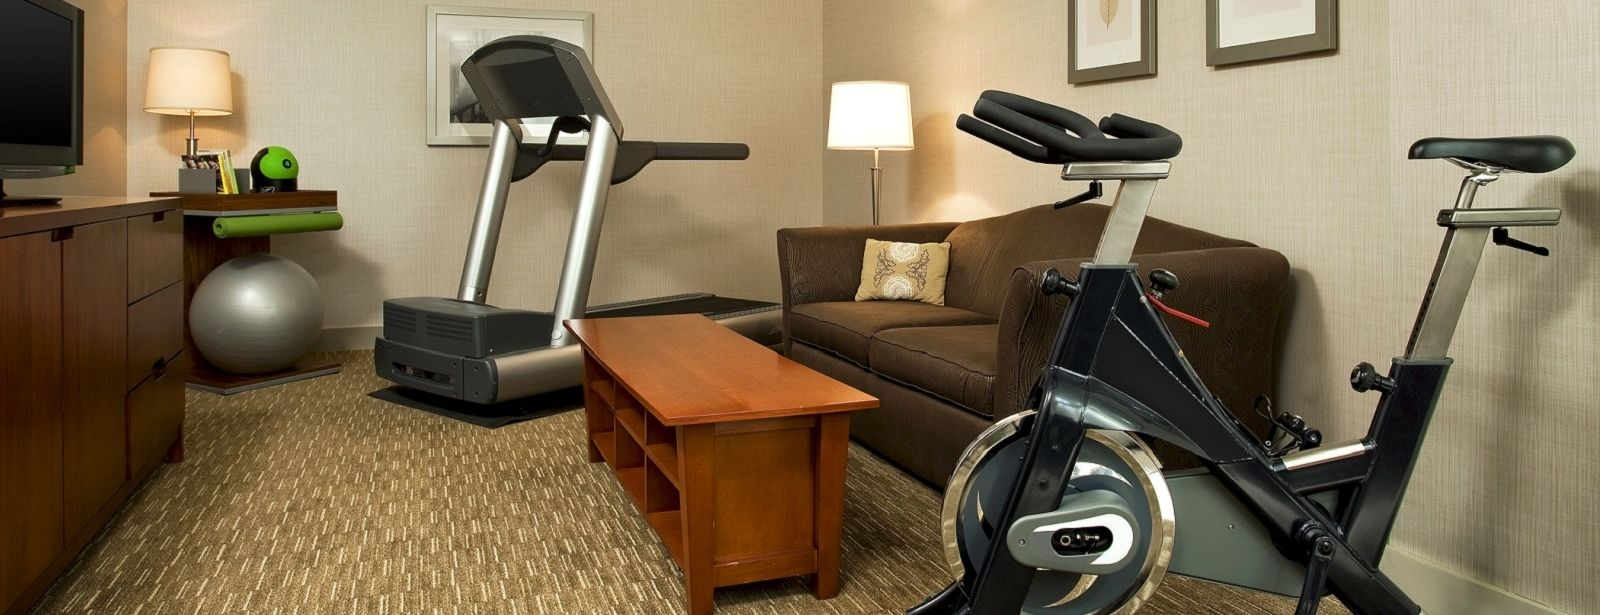 Lombard Hotel Rooms - WestinWORKOUT Rooms